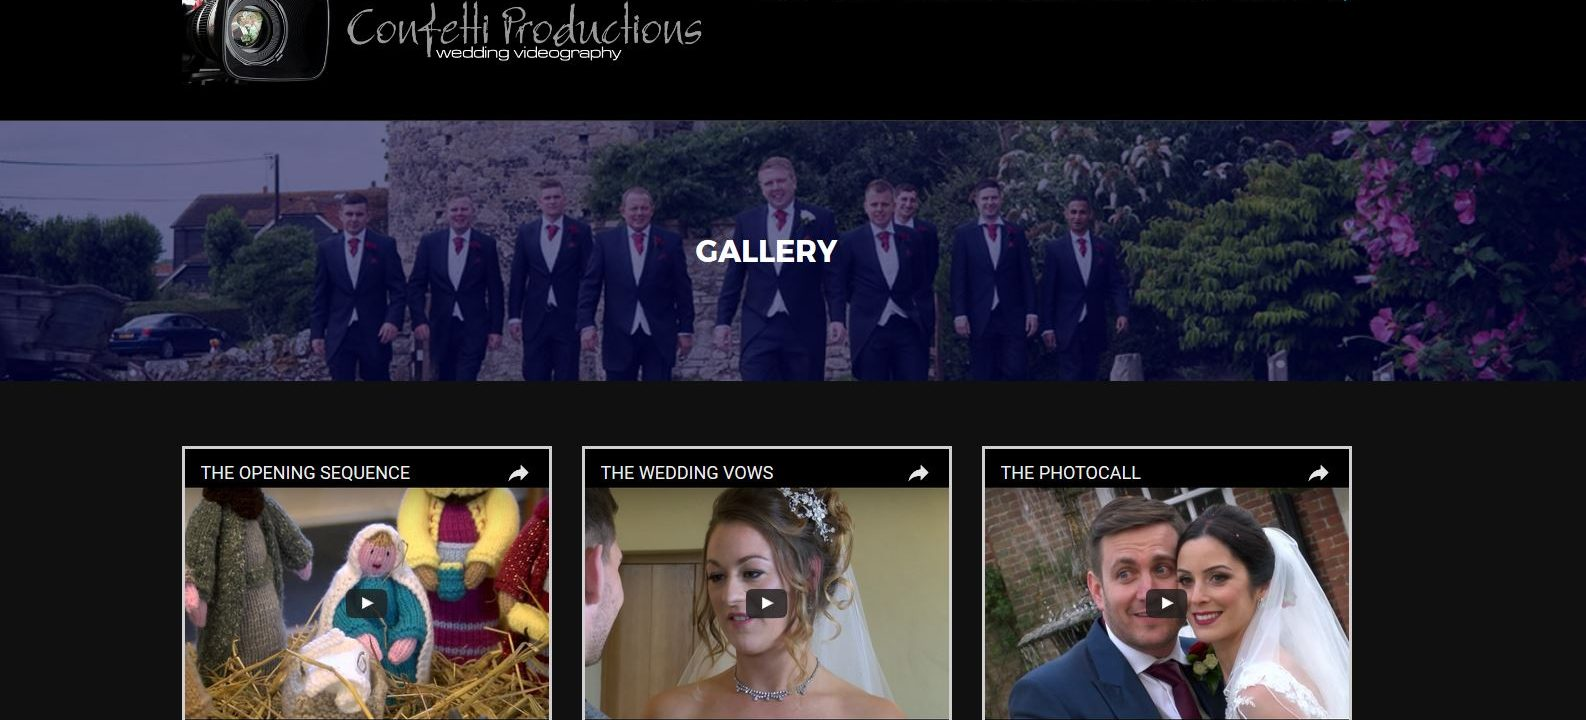 confetti videos new wordpress website design